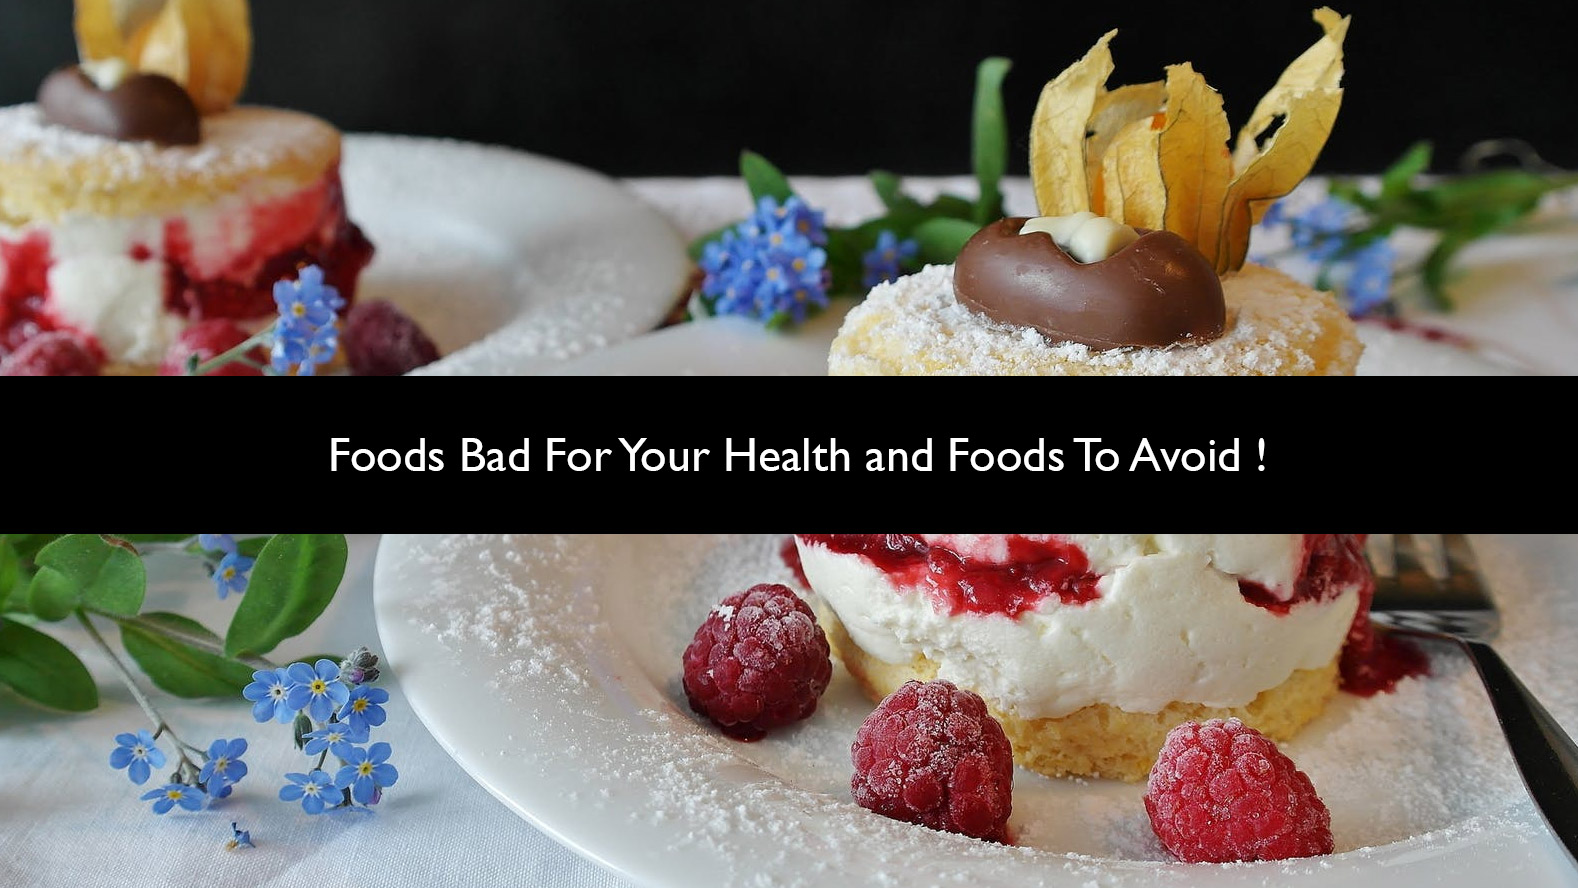 Foods Bad For Your Health and Foods To Avoid - by Dostara Sri Lanka